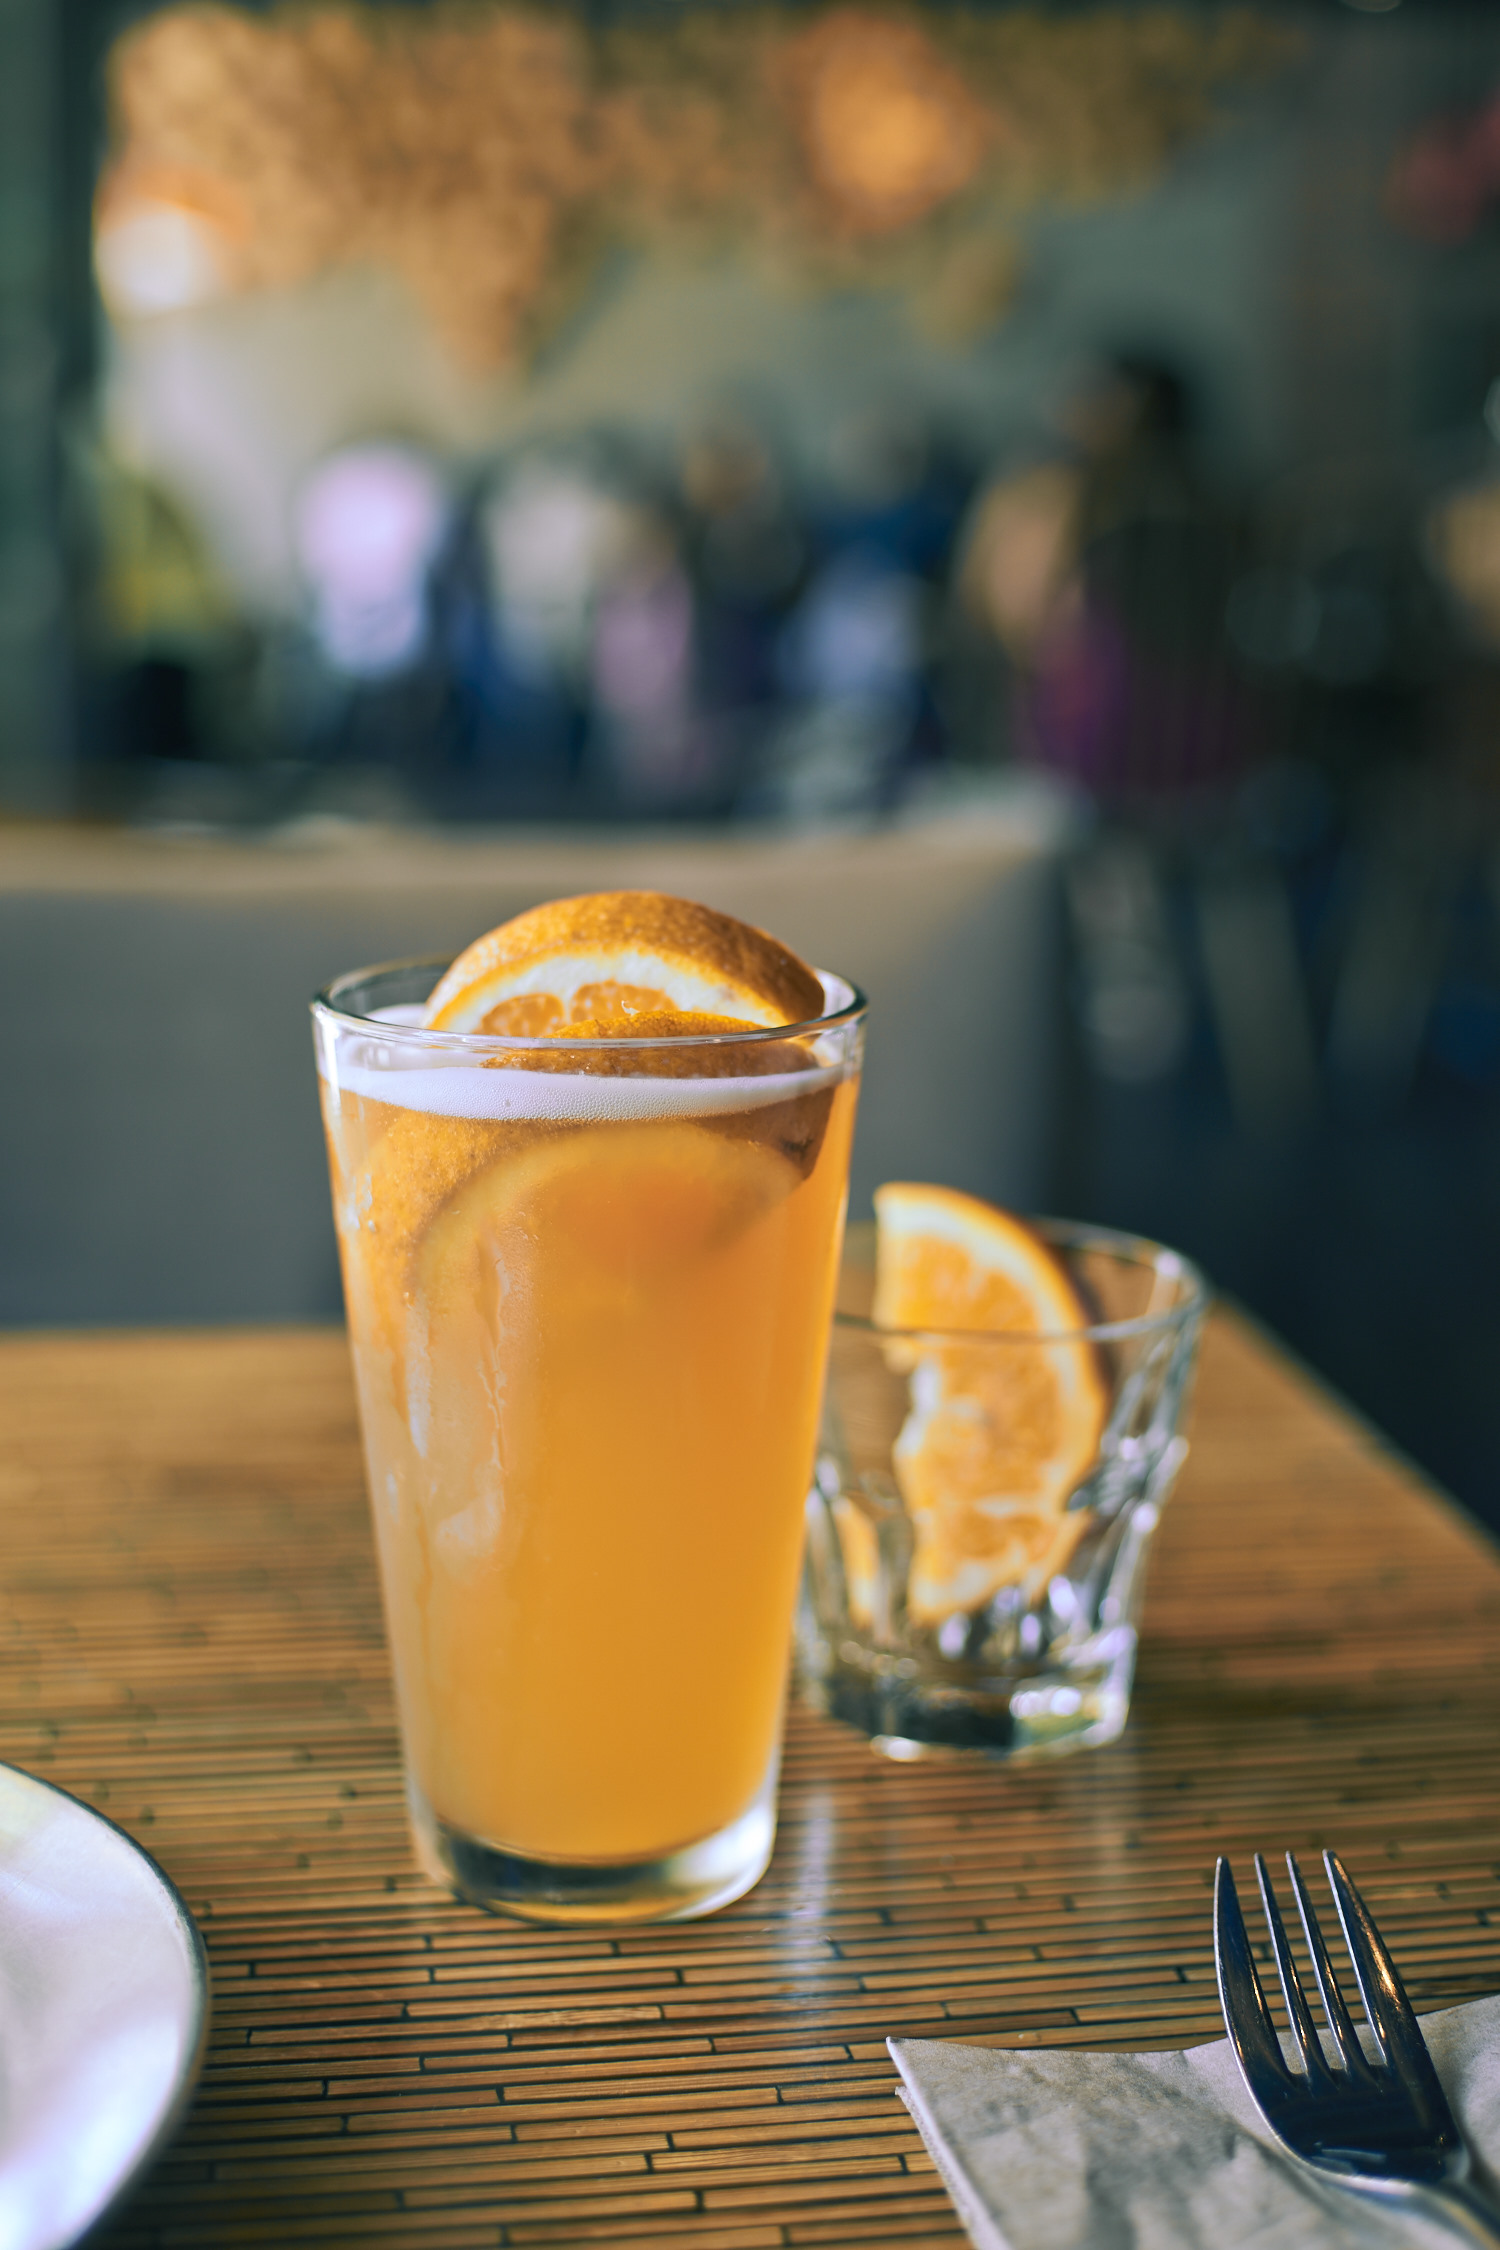 Blue moon with extra orange is a good way to start a lunch